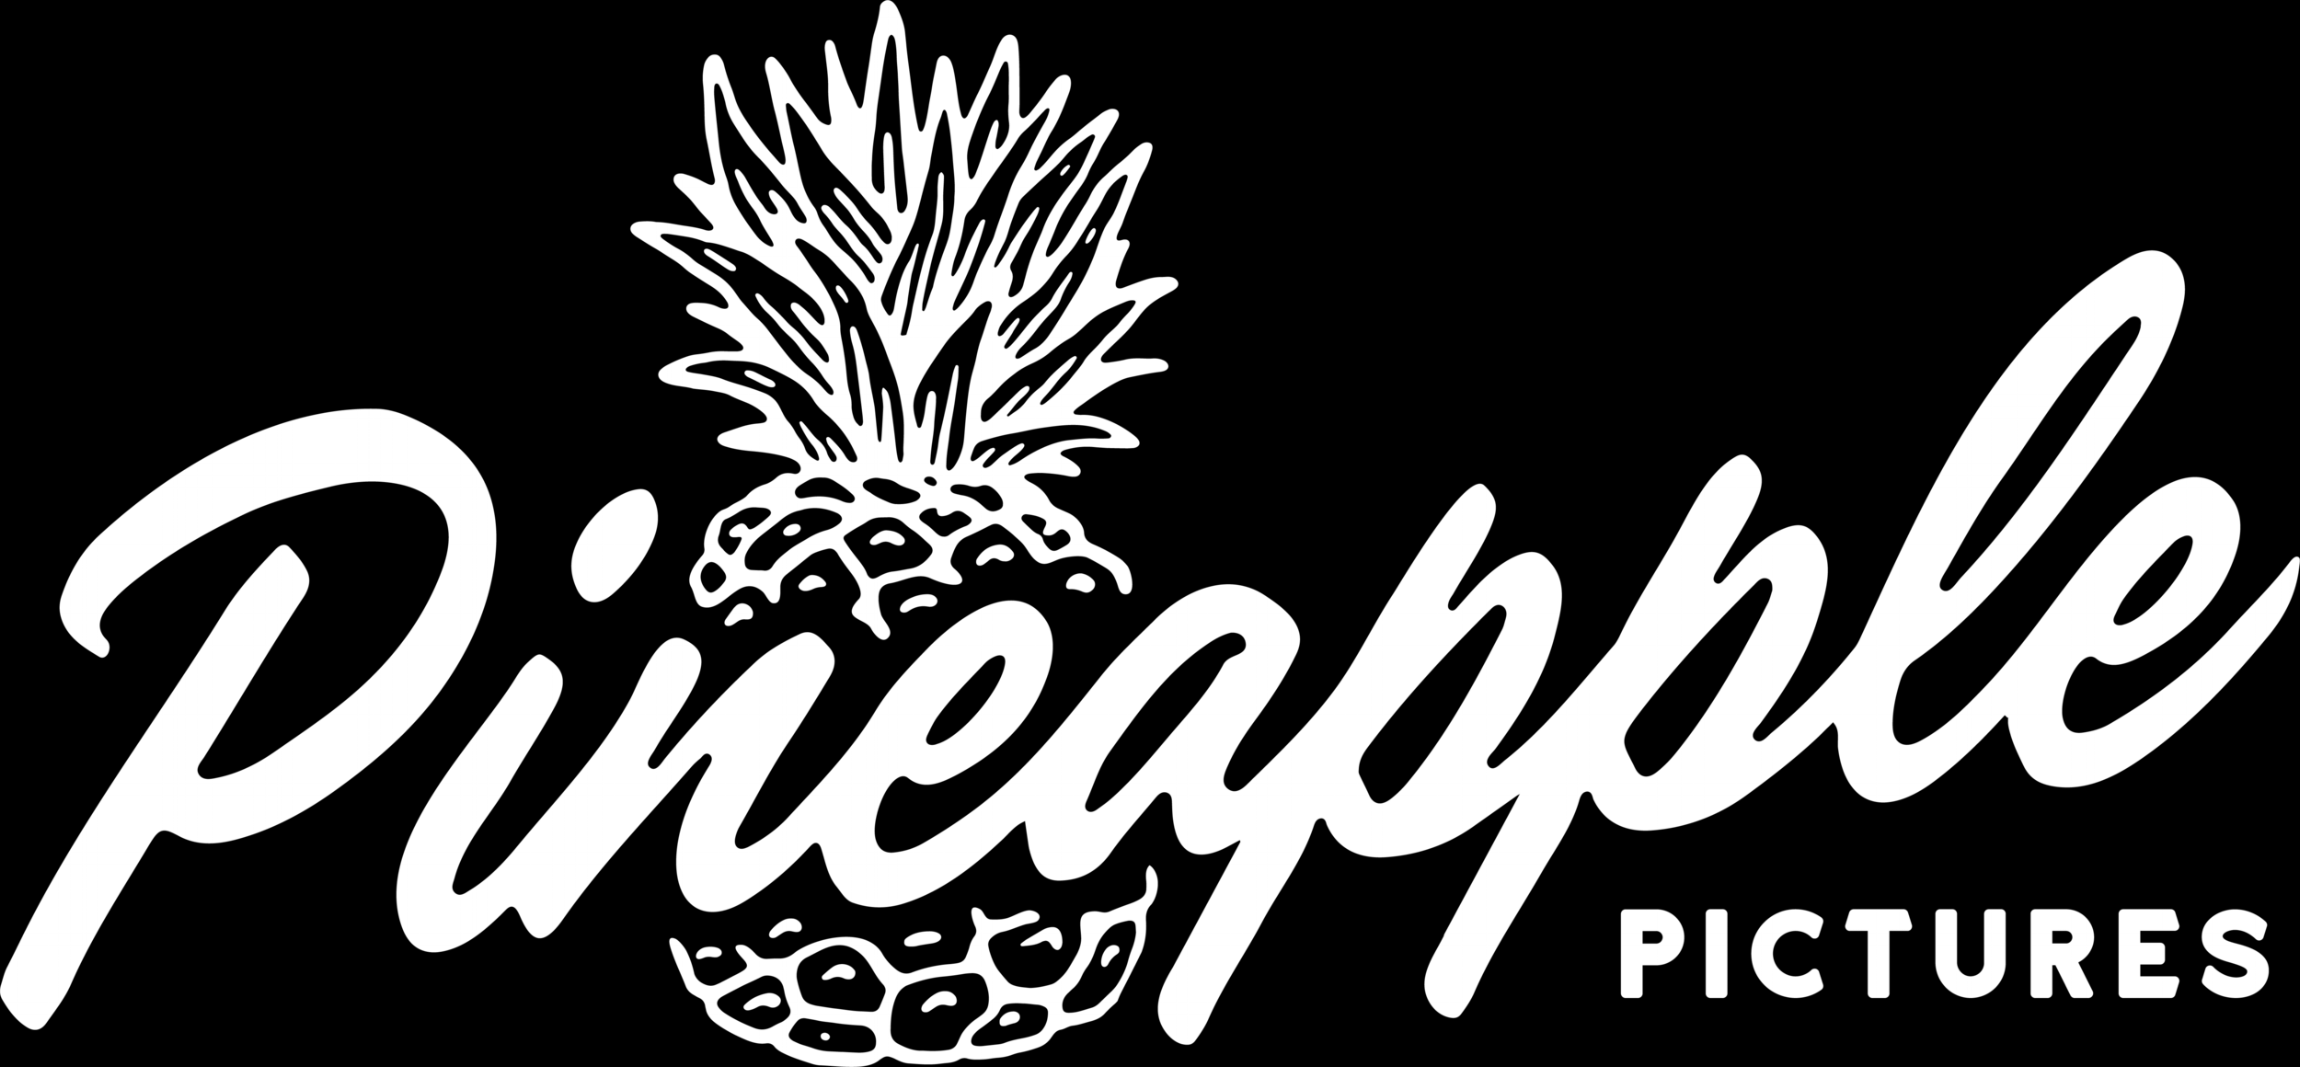 Pineapple_Primary_4k.png